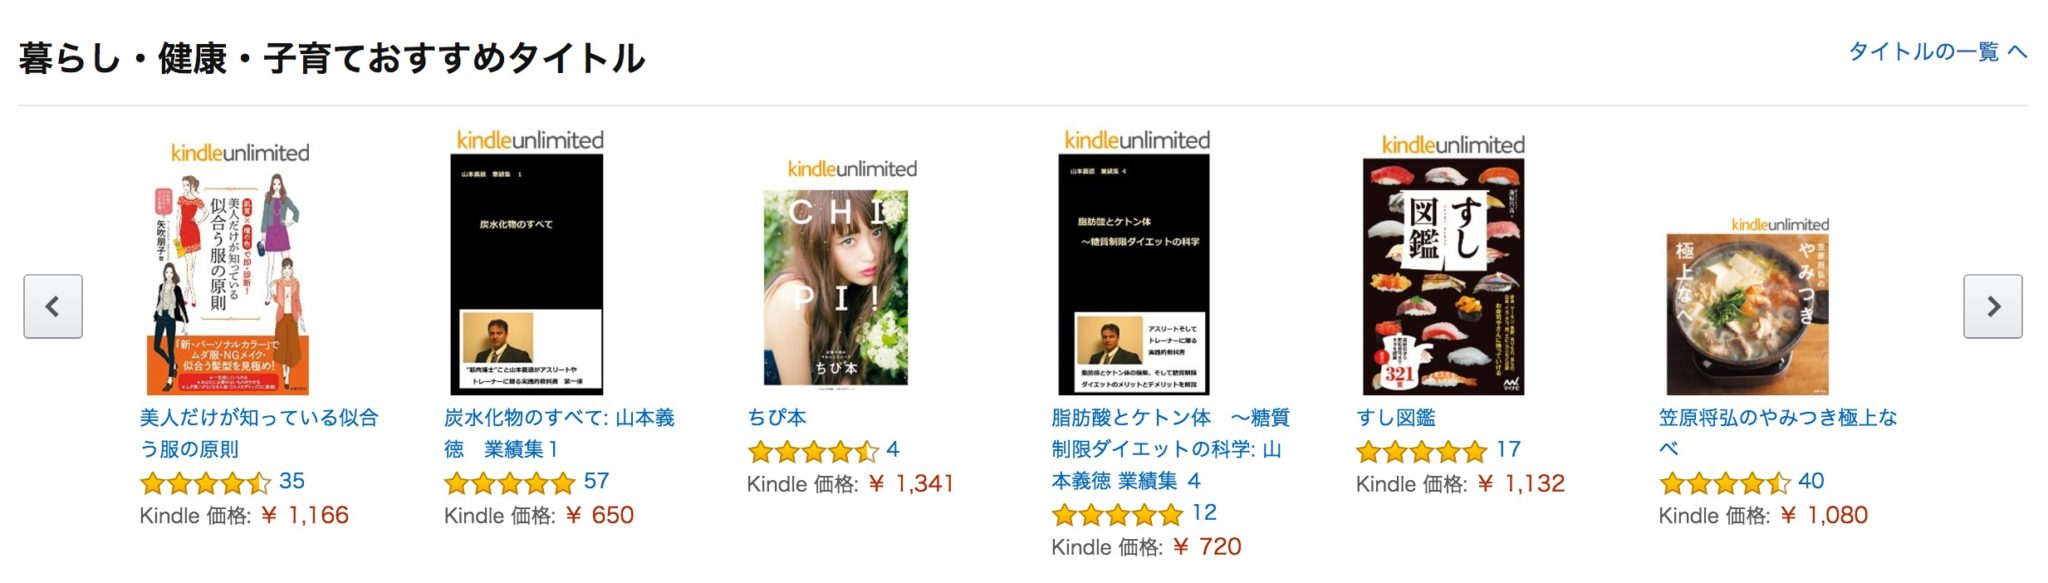 Kindle Unlimited 登録